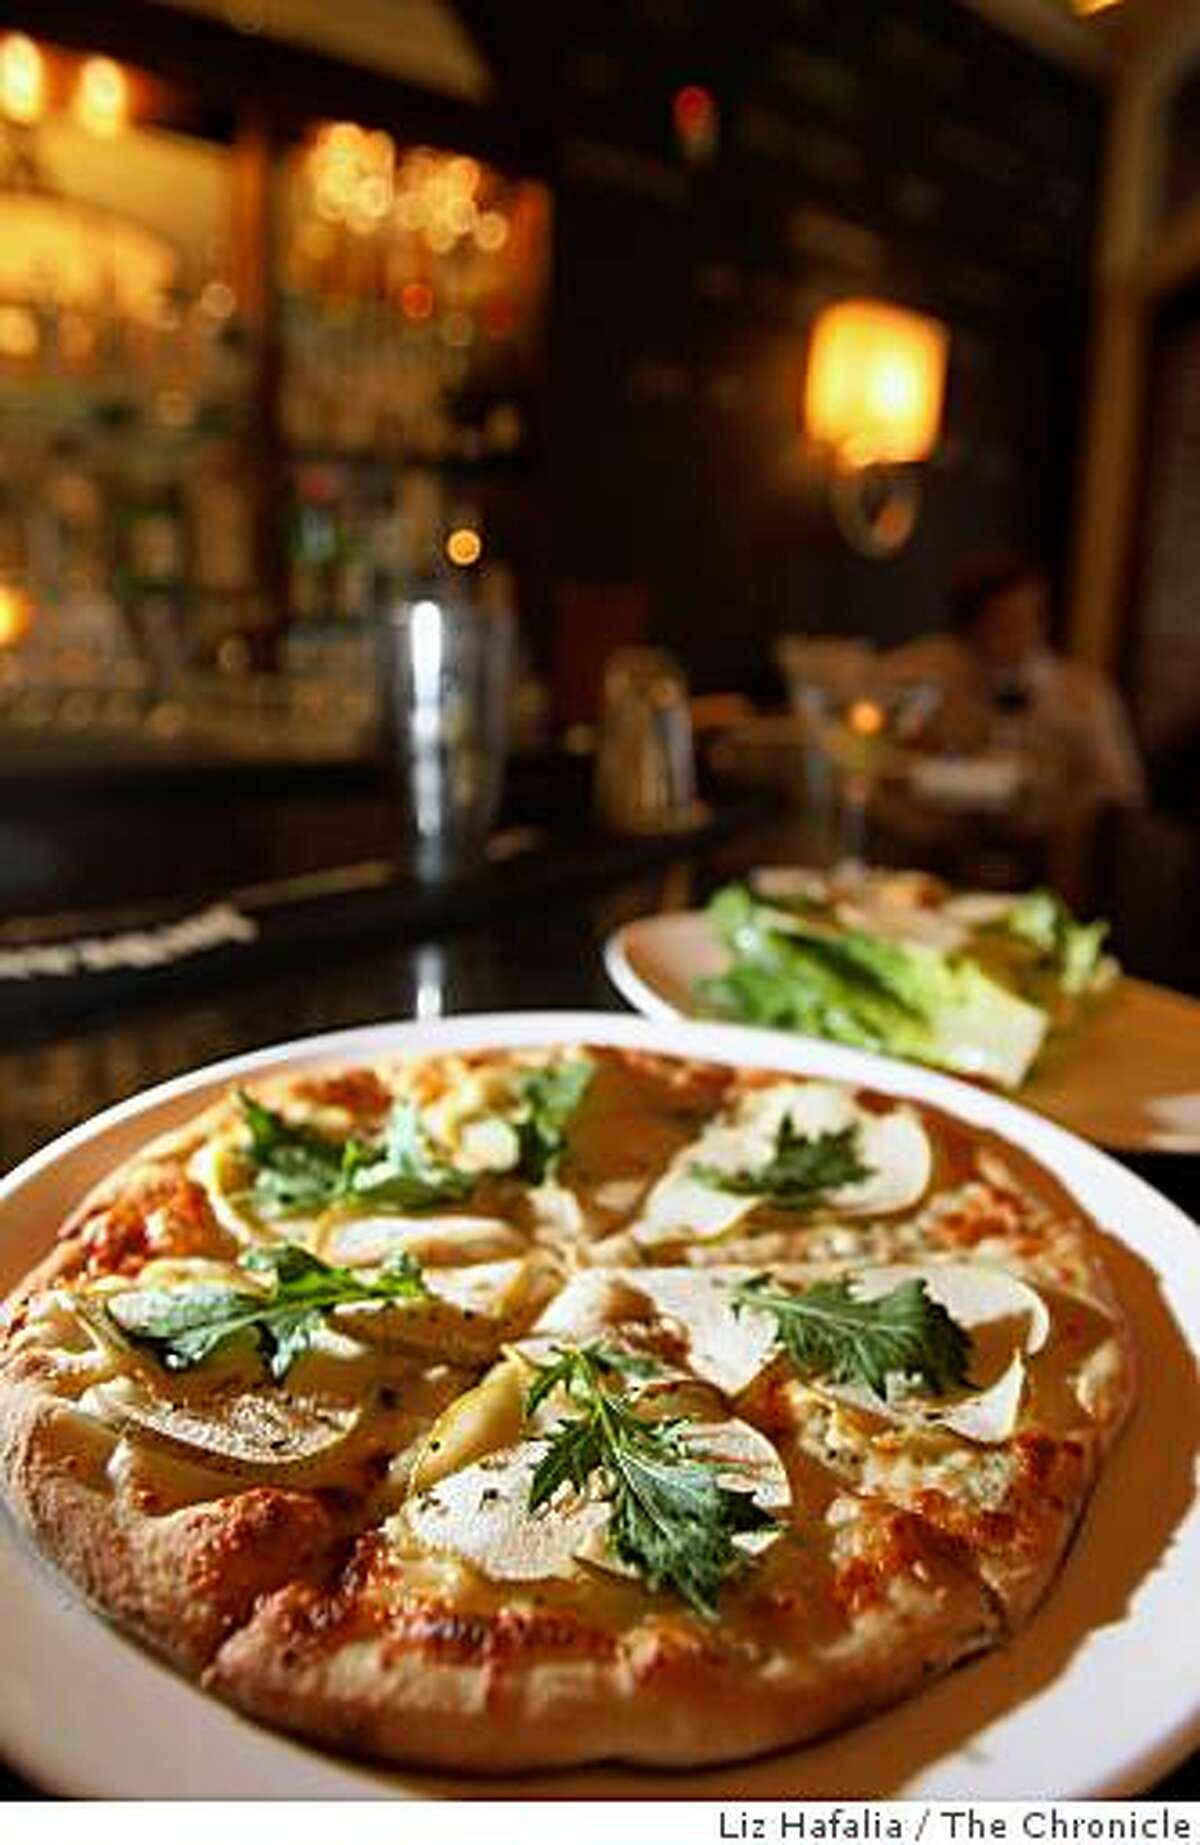 Pizza and caesar salad on the bar of Enrico's, a well-known North Beach bar and restaurant in San Francisco, Calif., on Monday, August 4, 2008.Photo by Liz Hafalia/The Chronicle